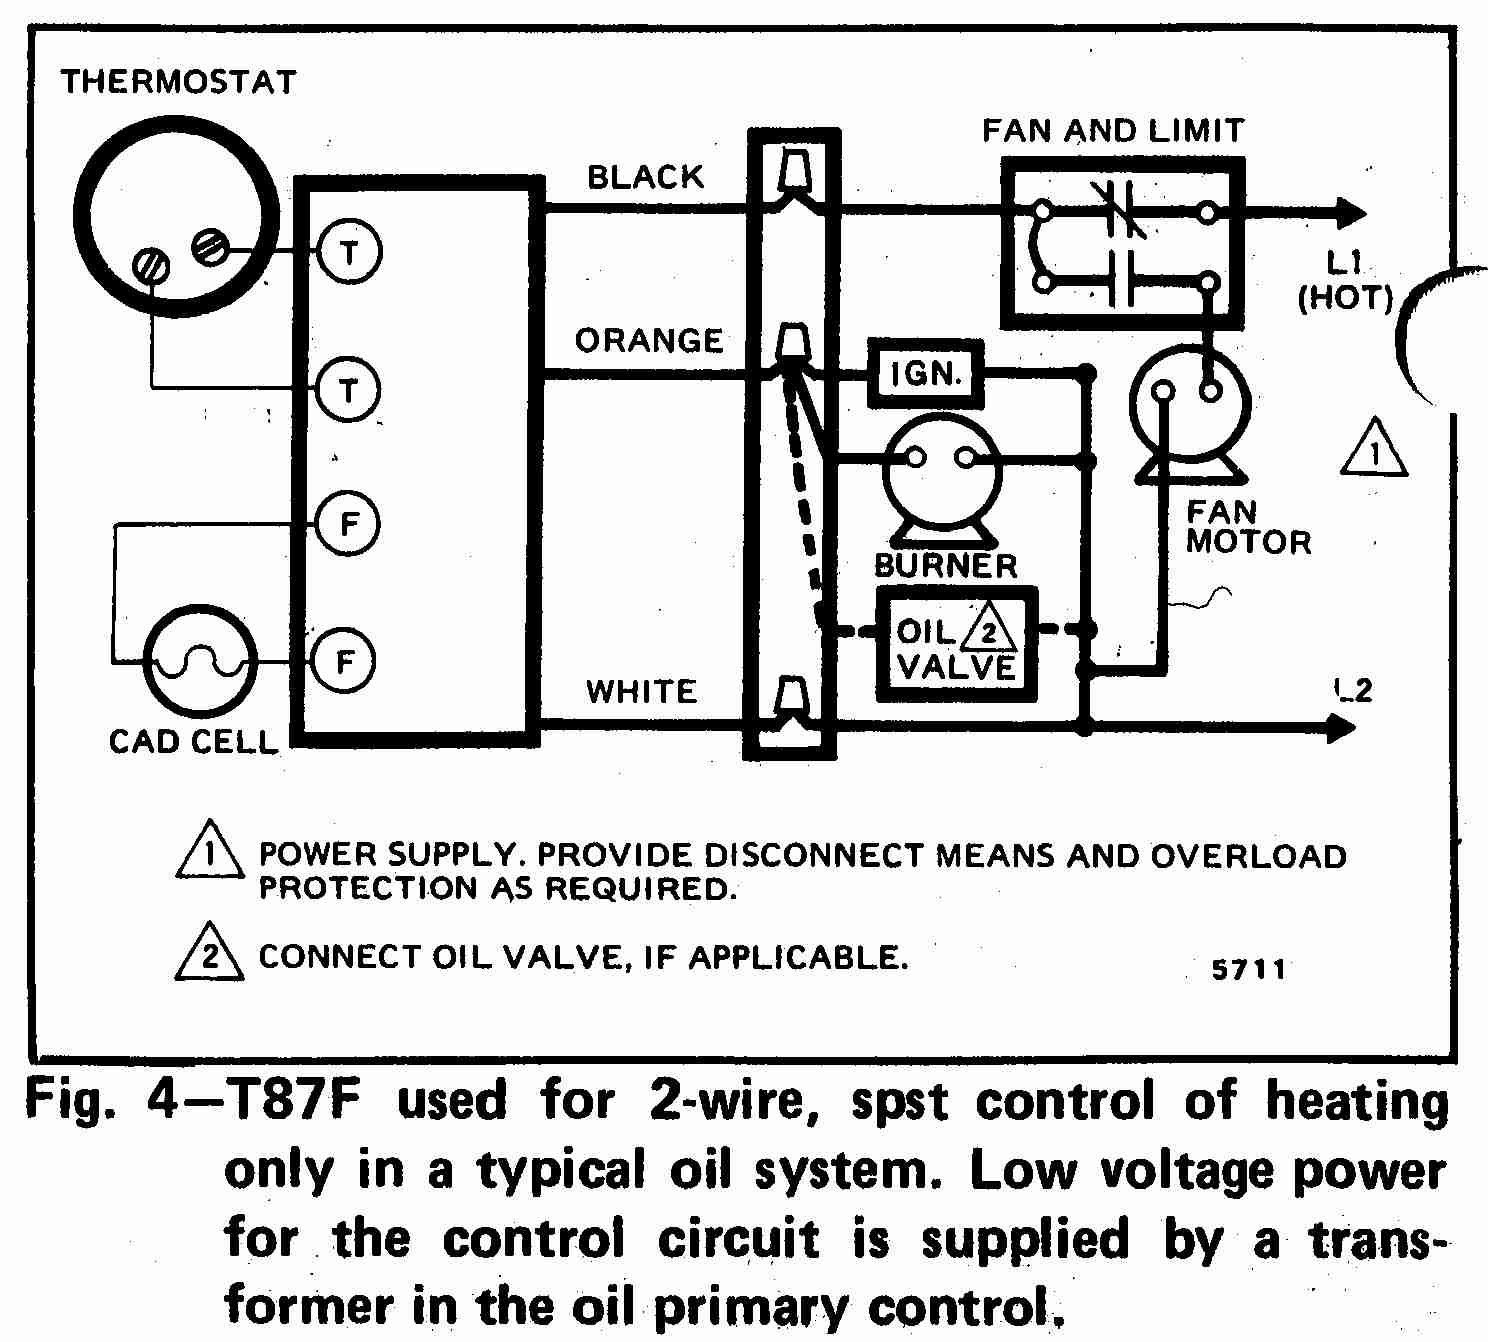 Unique Central Heating Wiring Diagram Uk Thermostat wiring